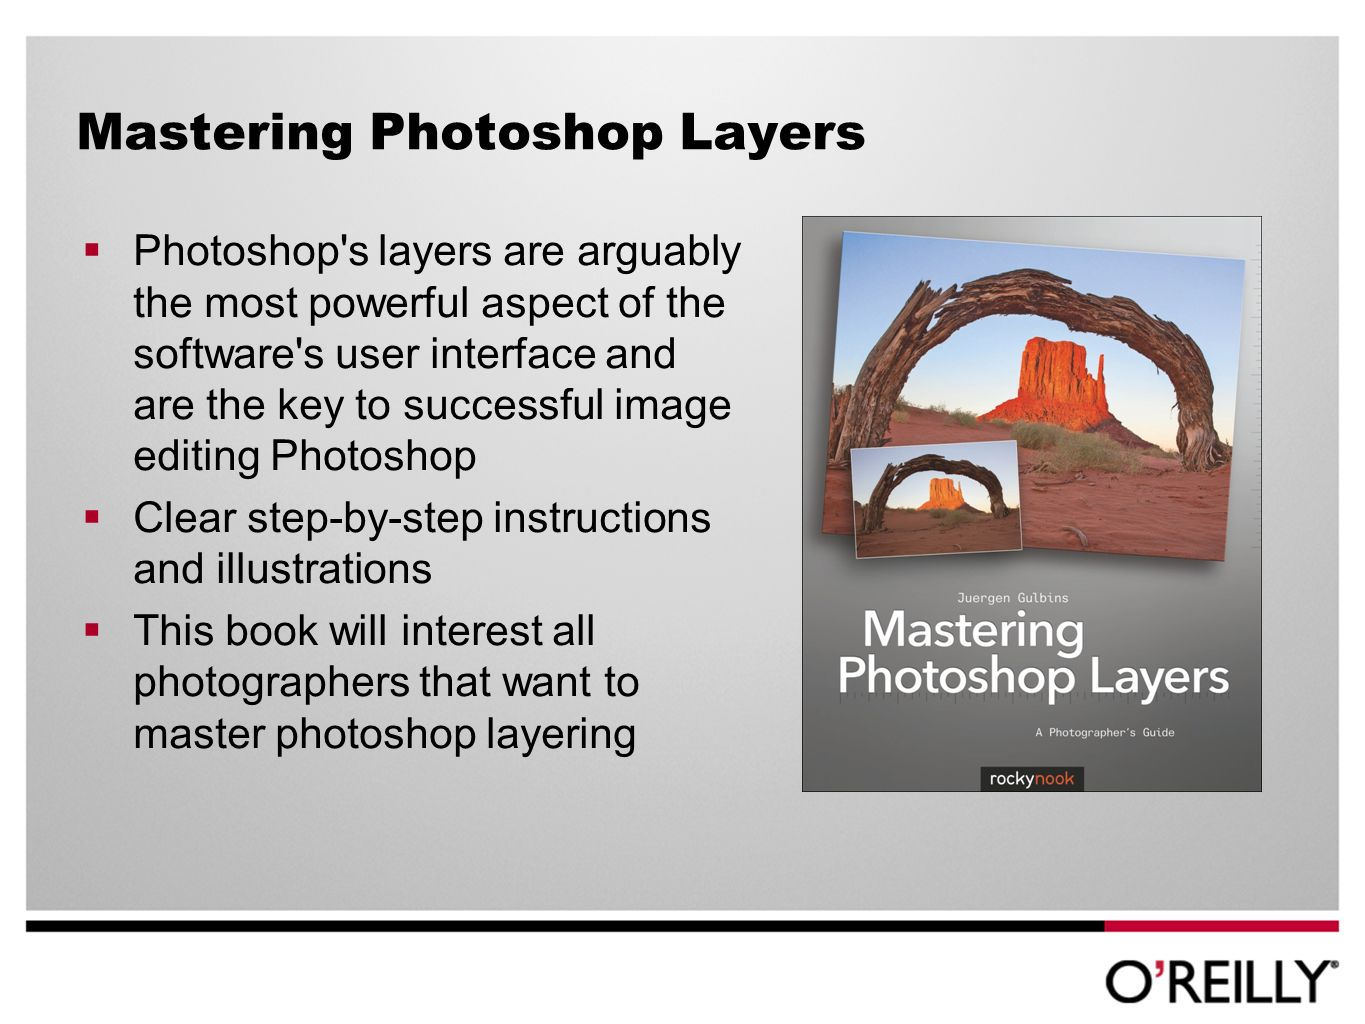 Mastering Photoshop Layers Photoshop s layers are arguably the most powerful aspect of the software s user interface and are the key to successful image editing Photoshop Clear step-by-step instructions and illustrations This book will interest all photographers that want to master photoshop layering